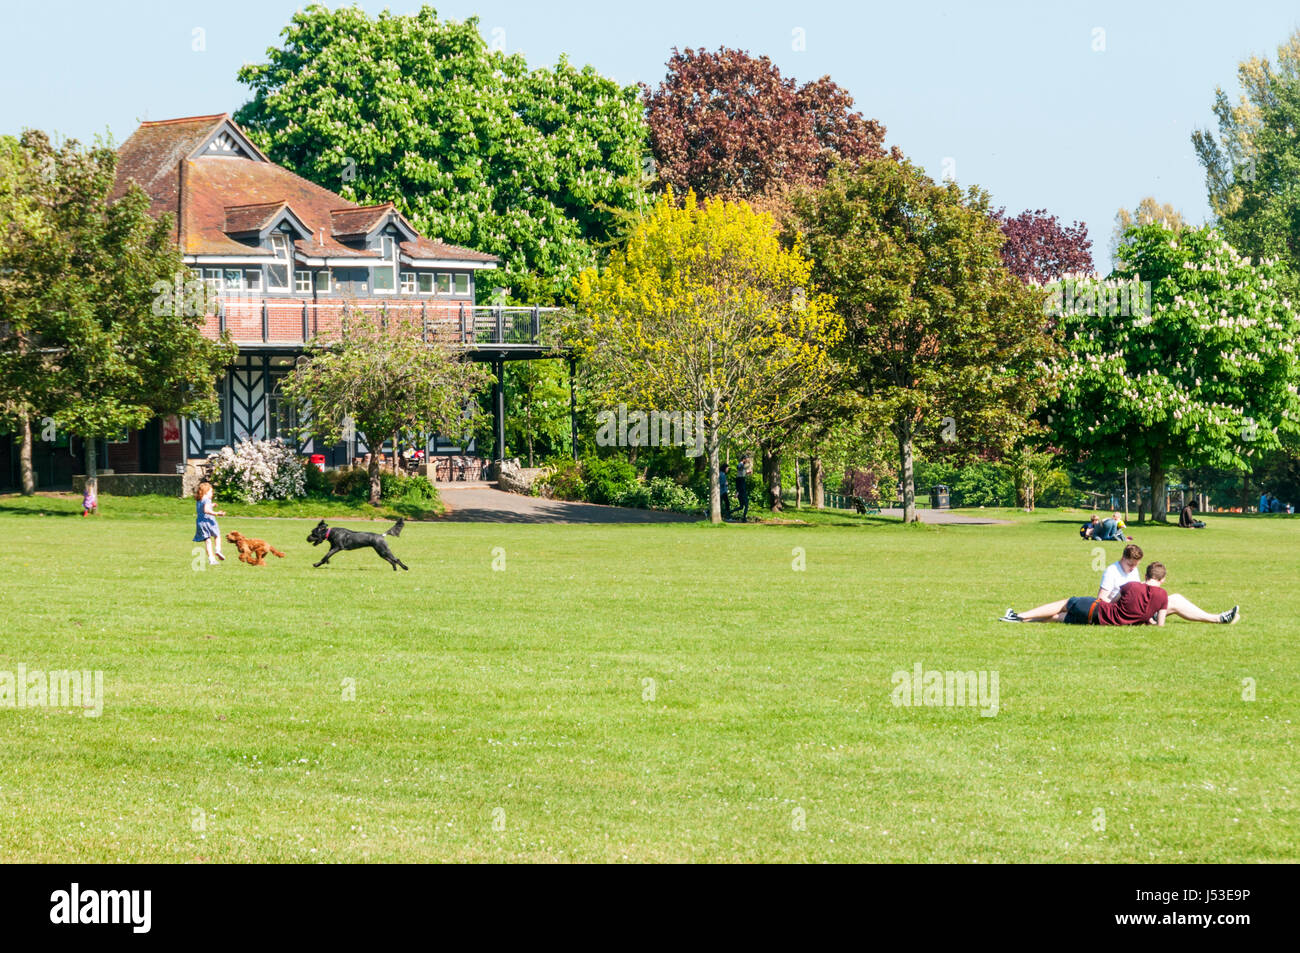 People relaxing in Preston Park, at 63 acres one of the largest public parks in Brighton. - Stock Image